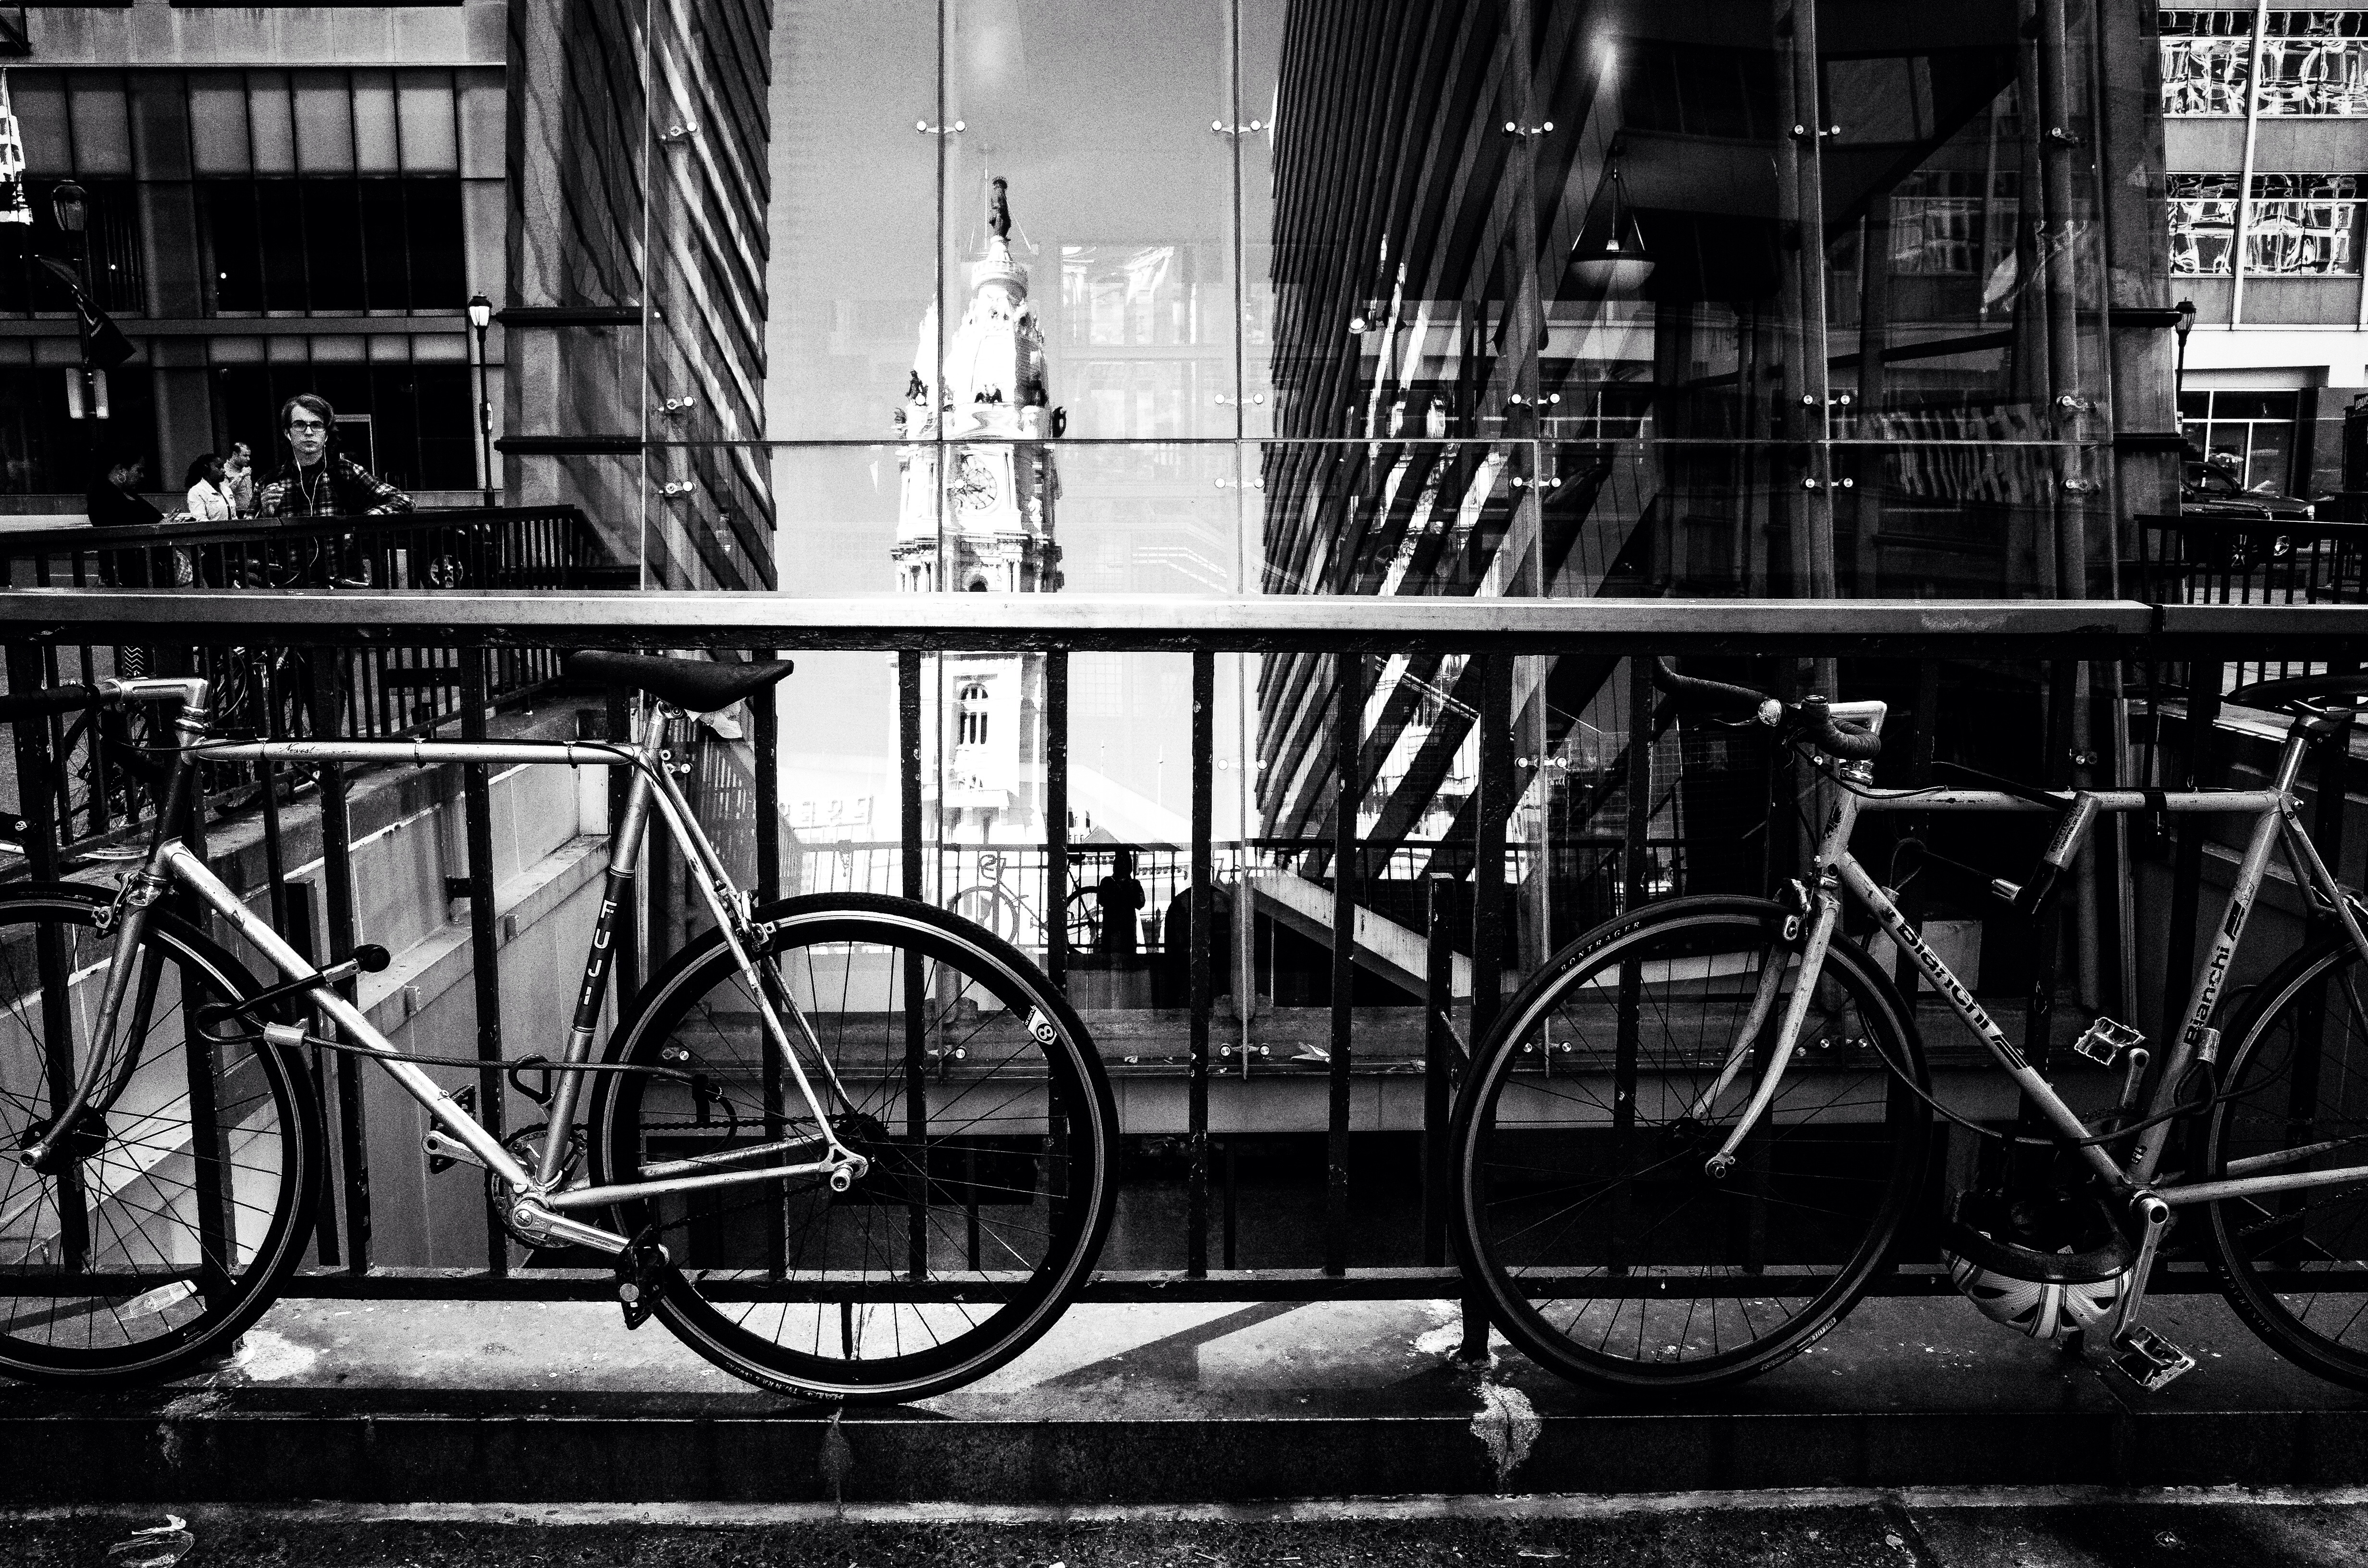 Bike parking, city hall reflections | Al BeFranke, EOTS Flickr Group